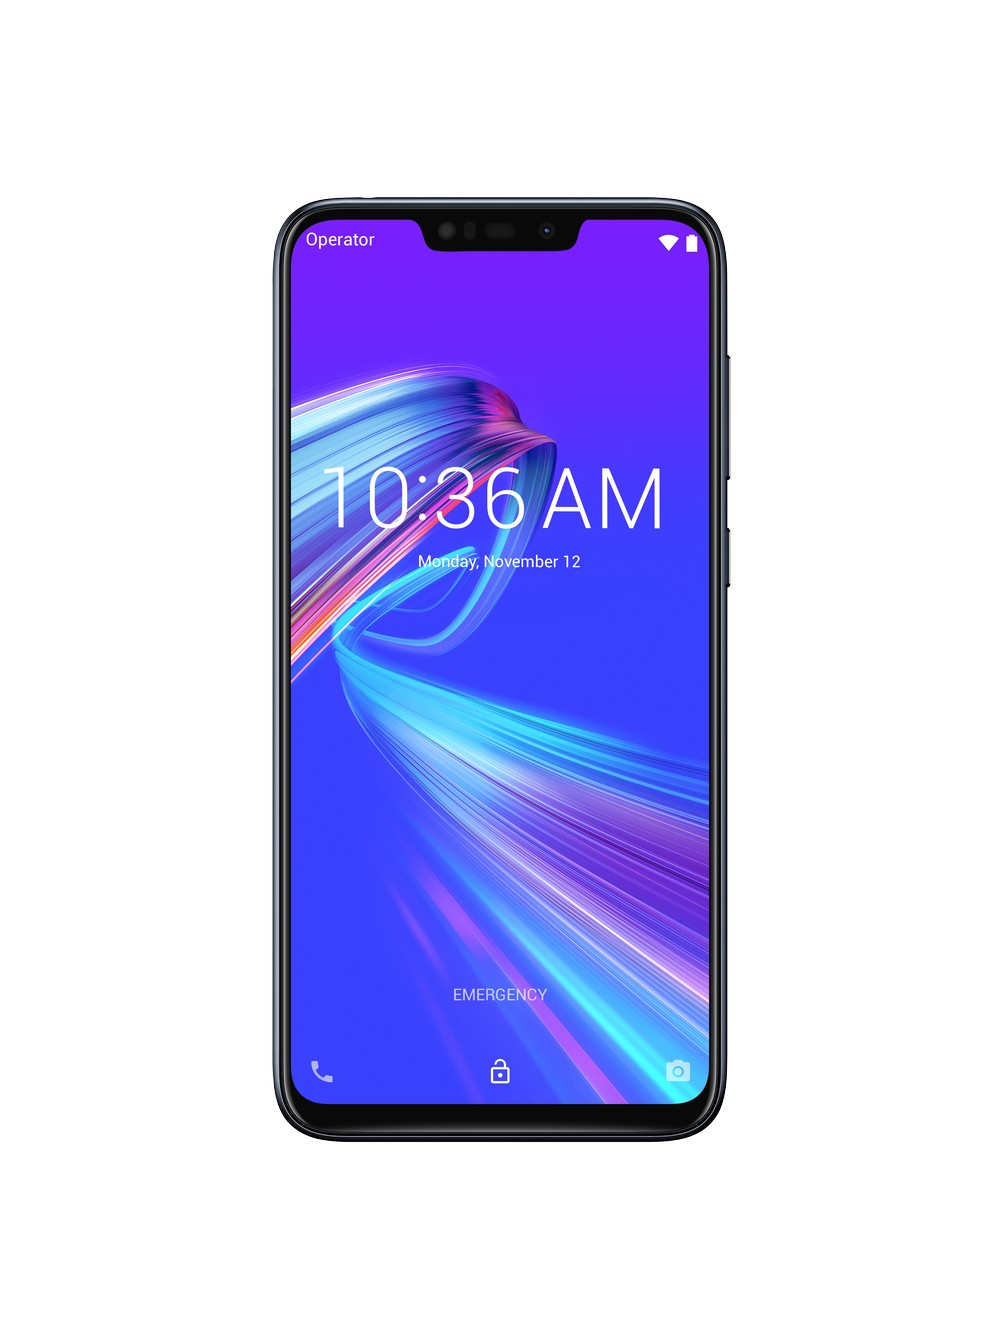 Asus Zenfone Max Pro M2 & Max M2 go official in Russia 3